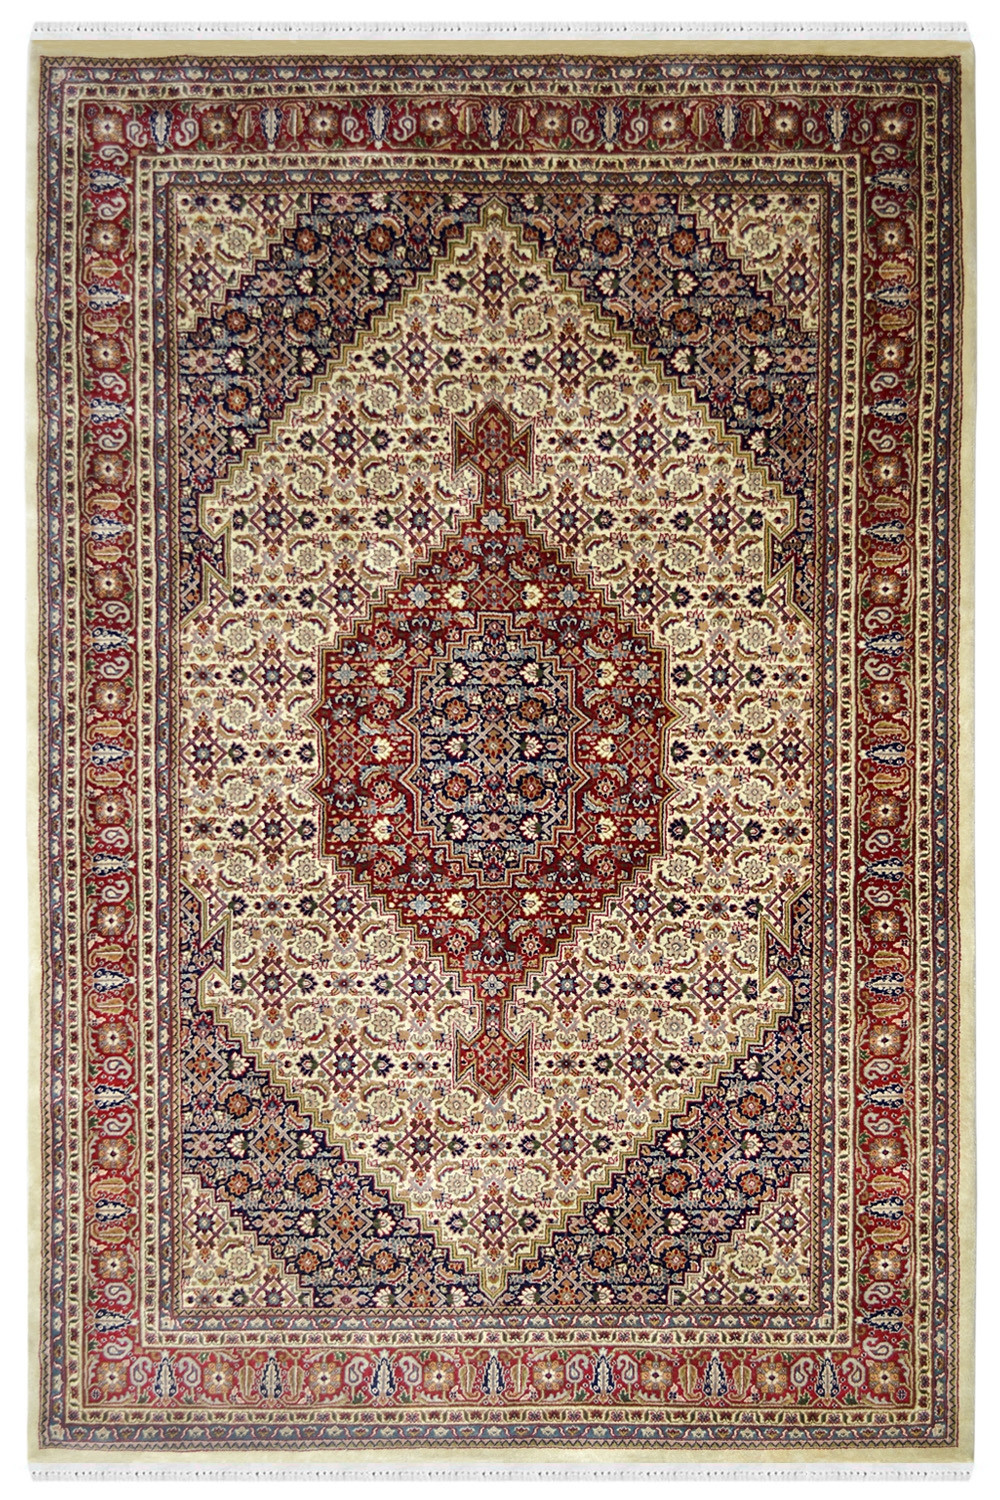 Get Diamond Bidjar Handmade Woolen Area Rug At Best Price